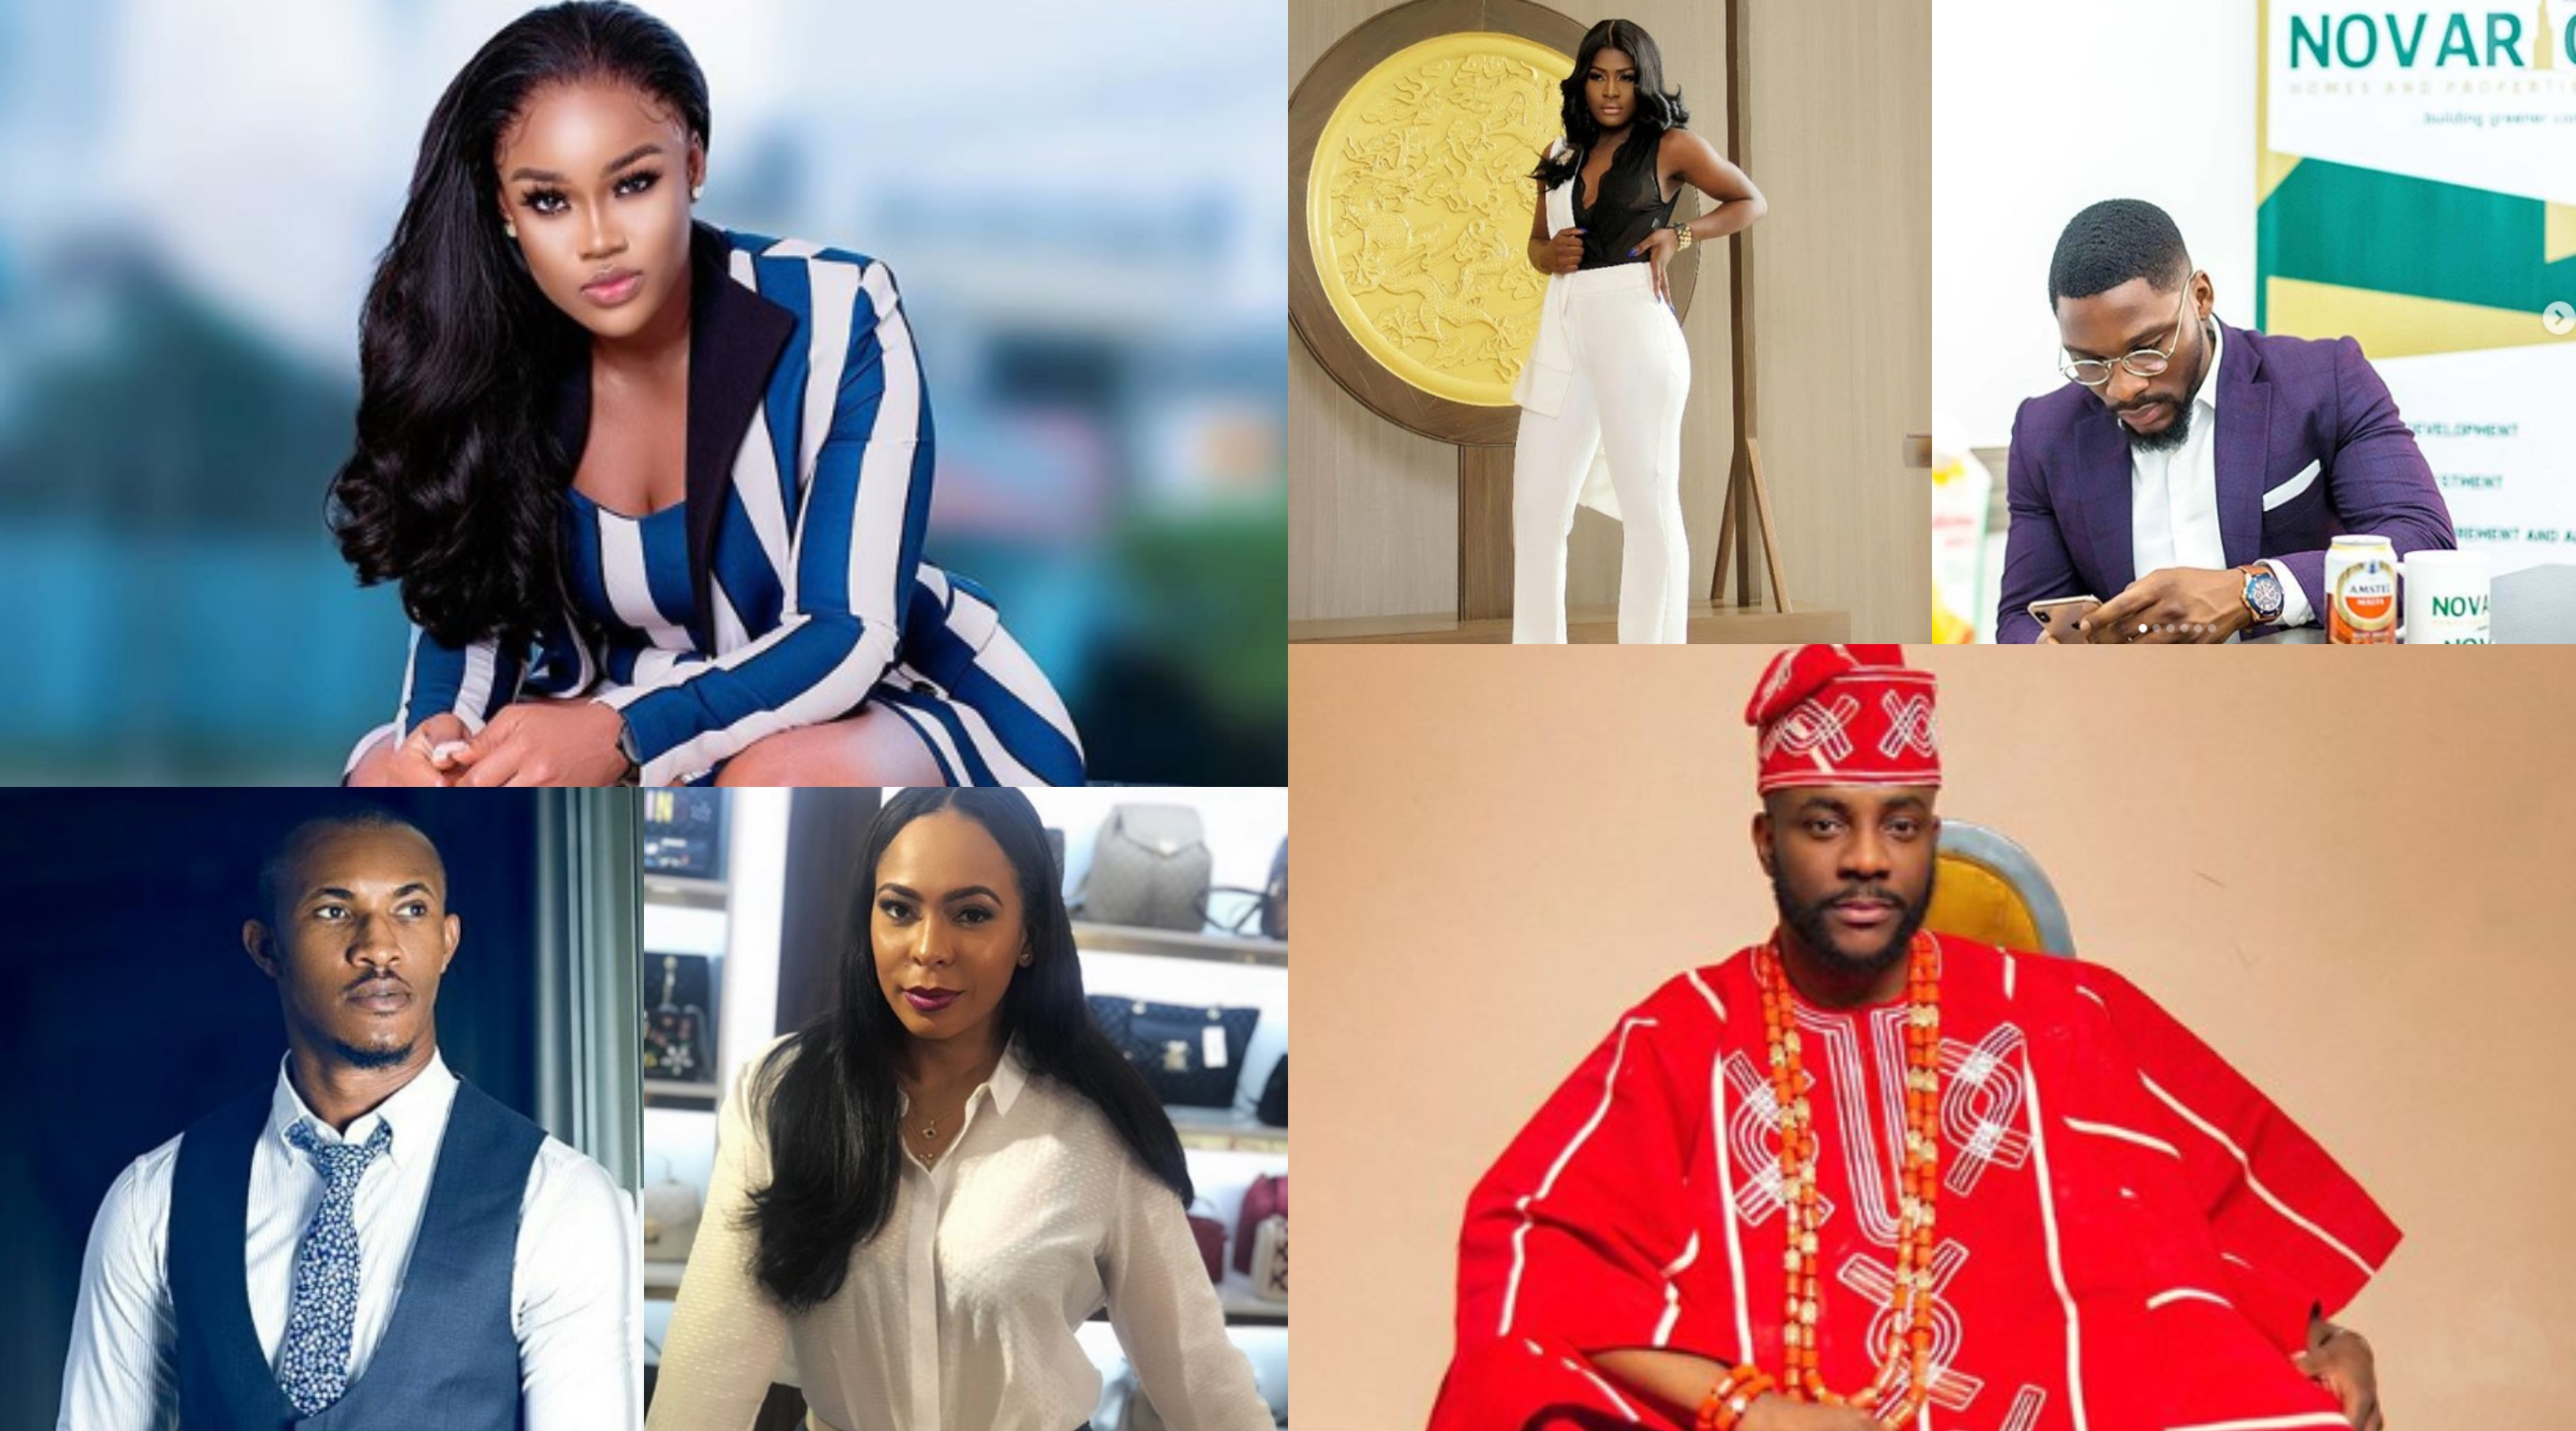 Big Brother Naija Housemates that made it big after the show